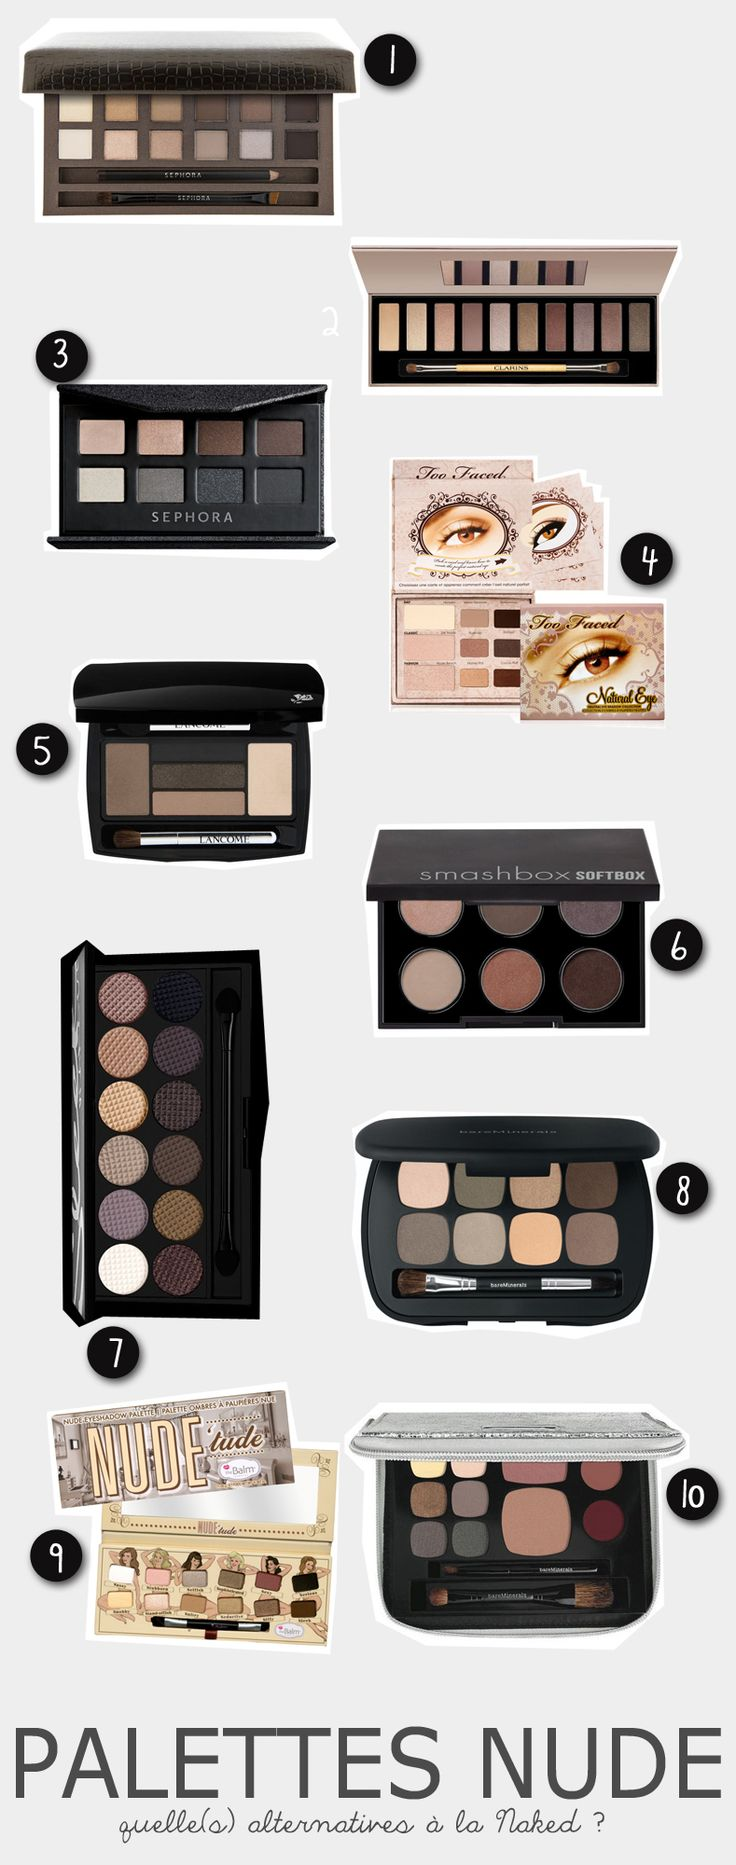 Palette(s) Naked Urban Decay : quelle(s) alternative(s) ? » Babillages